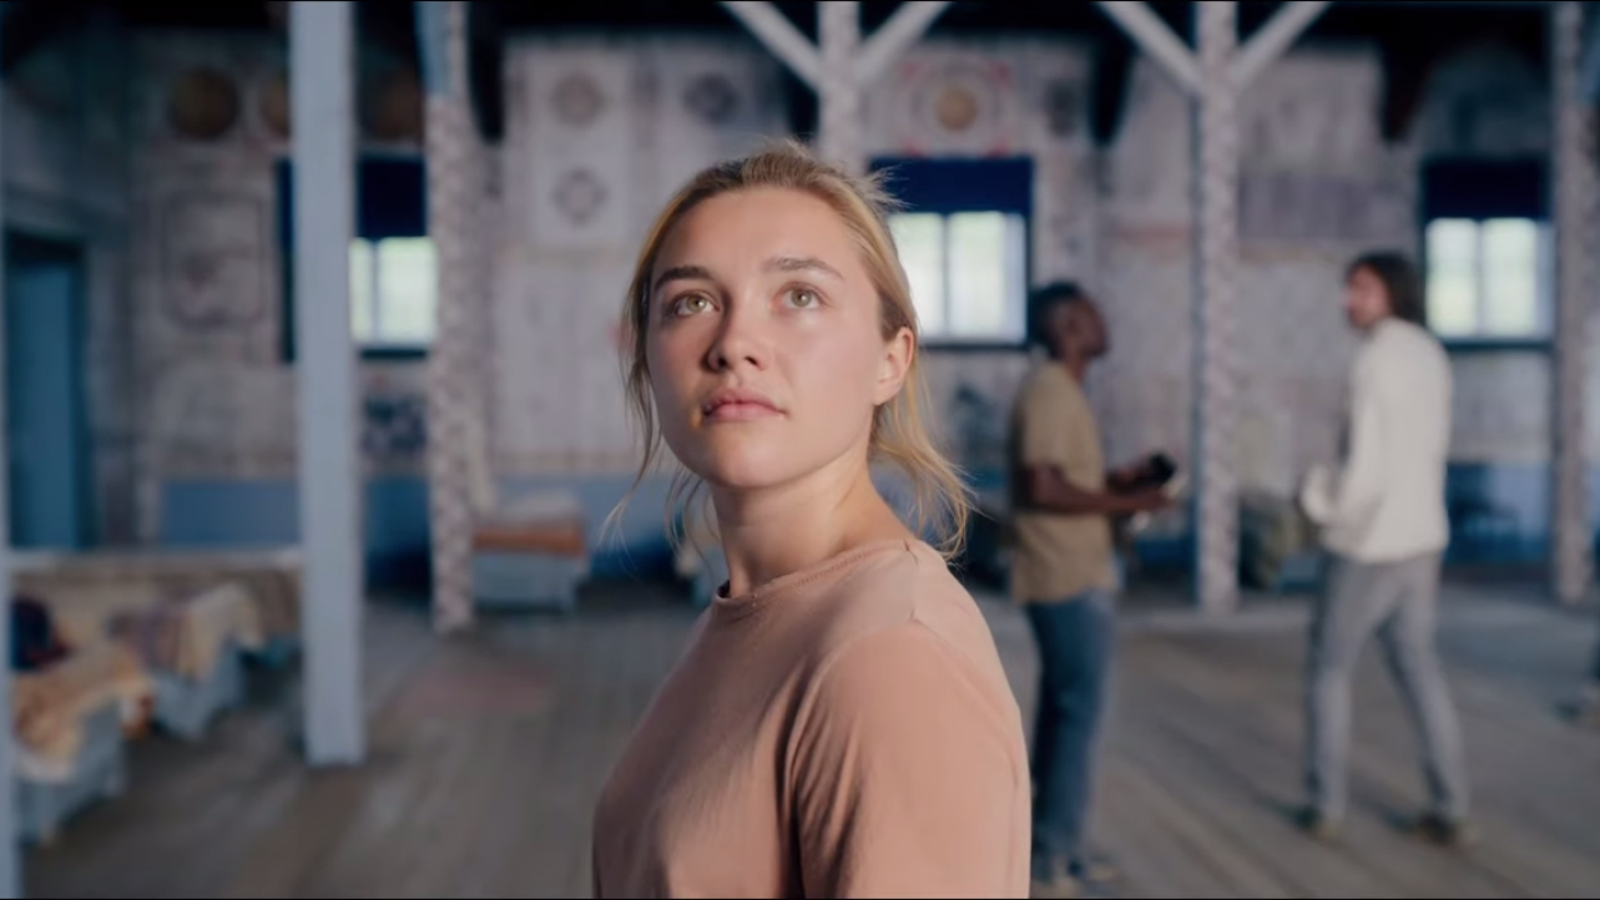 Florence Pugh >> Midsommar's new trailer certainly makes it look like an